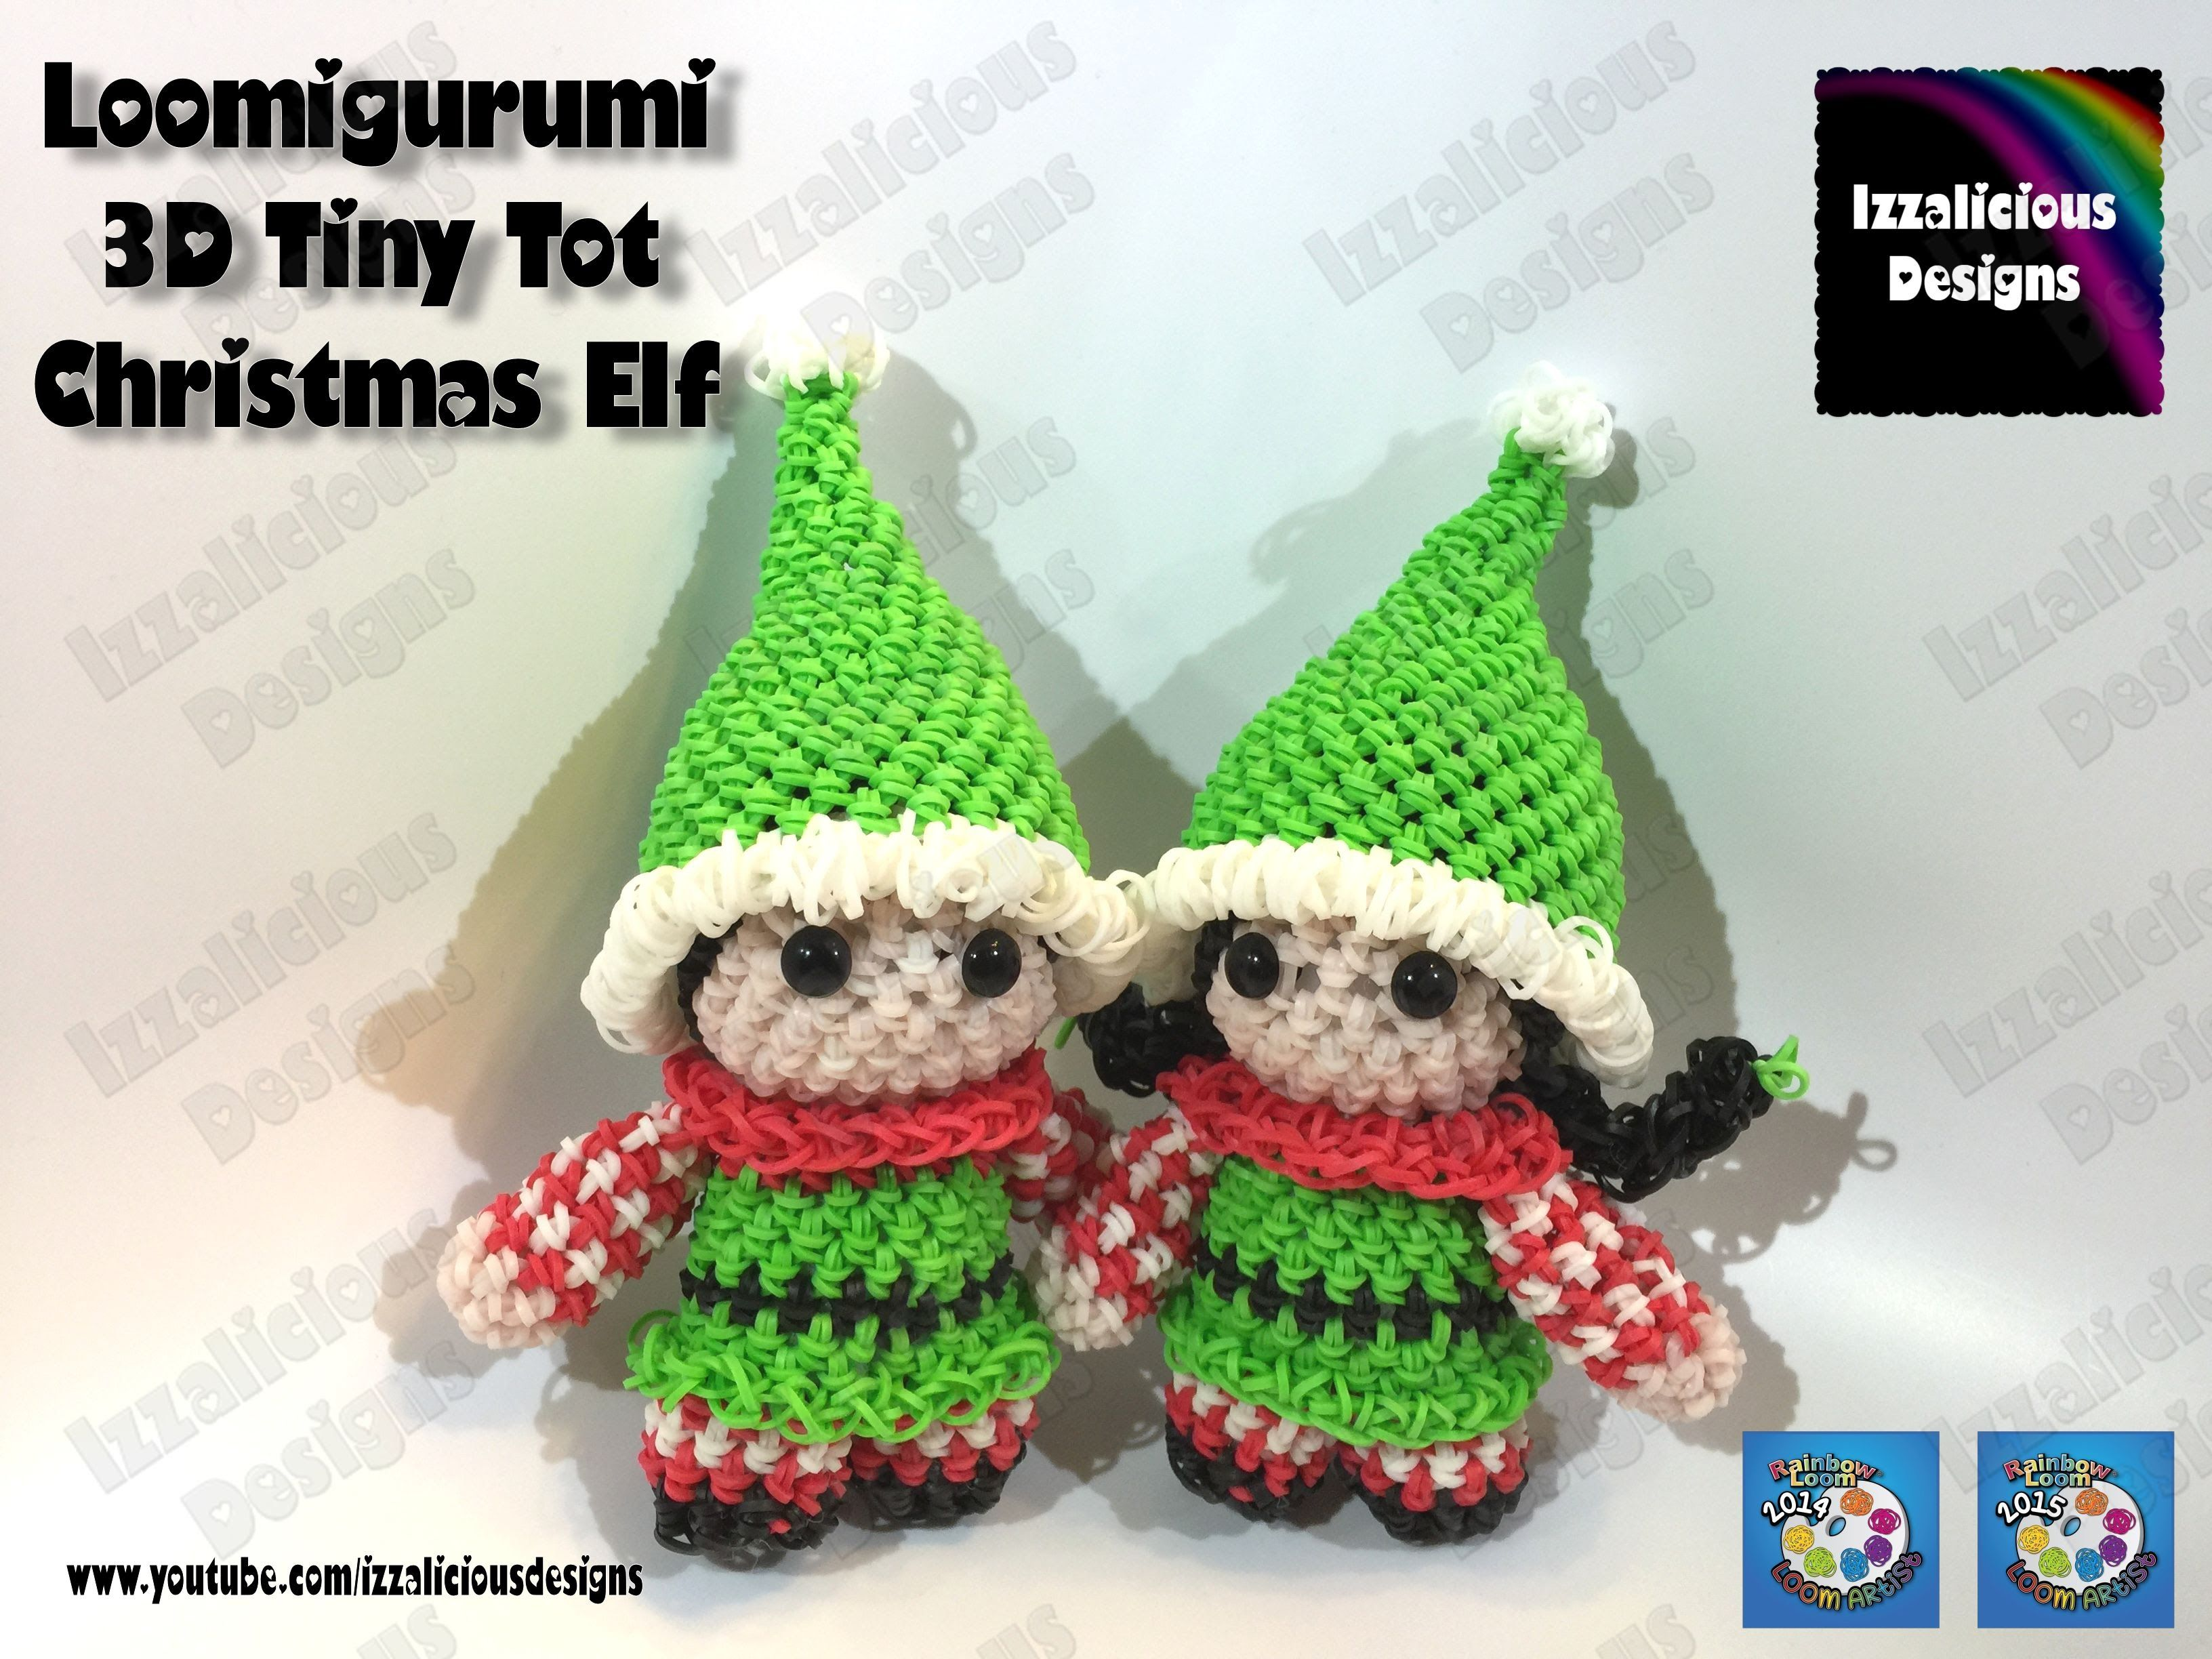 Amigurumi Loom Patterns : Loomigurumi elf tiny tot christmas figure amigurumi w rainbow